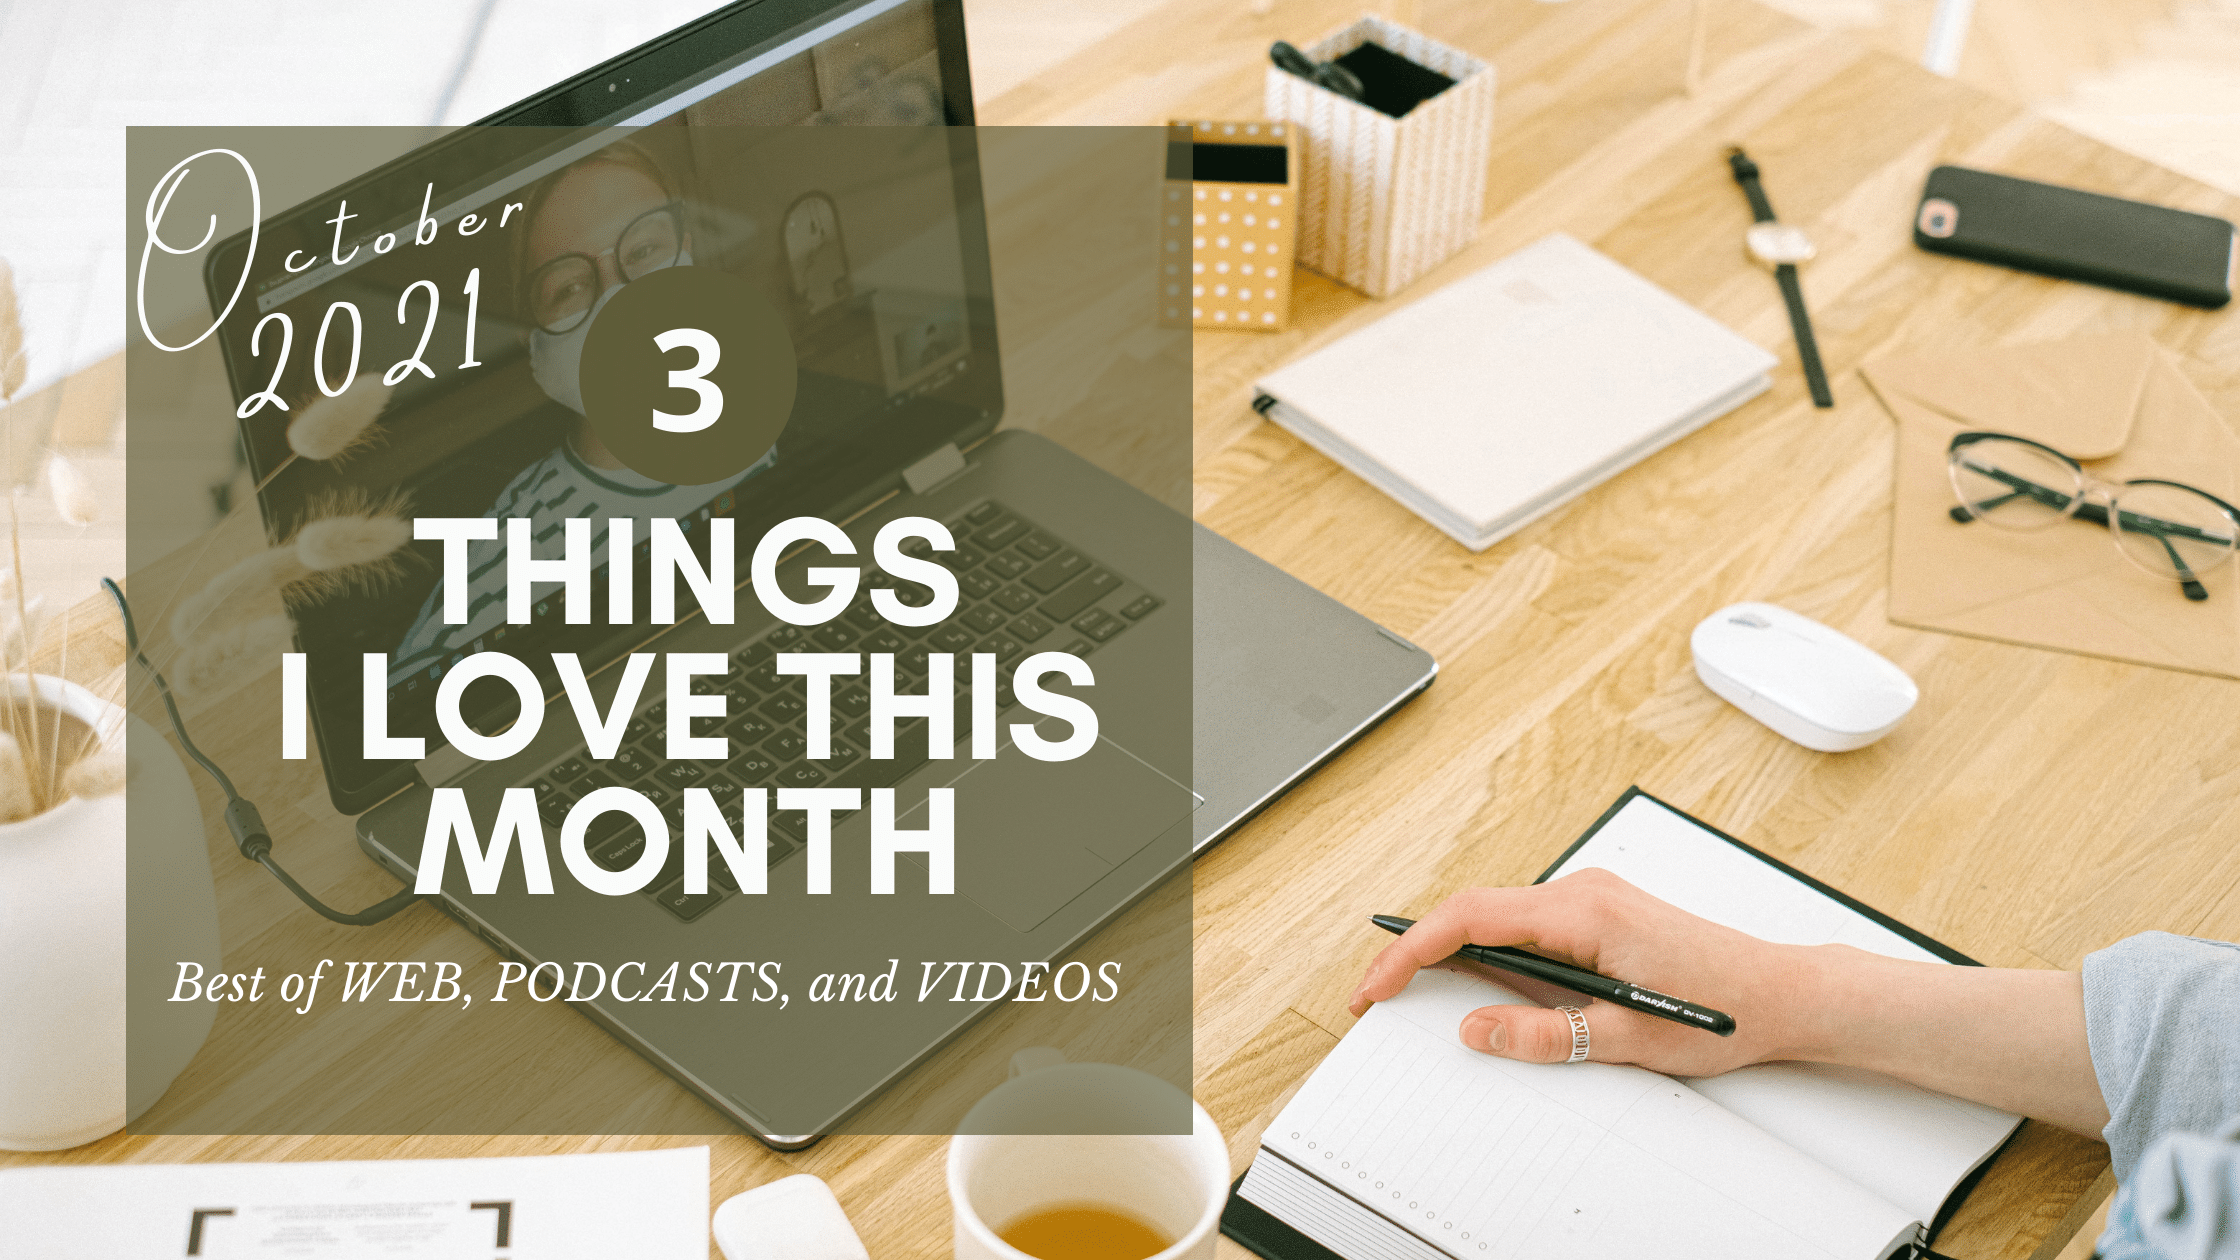 Best Podcast Video and Blogs